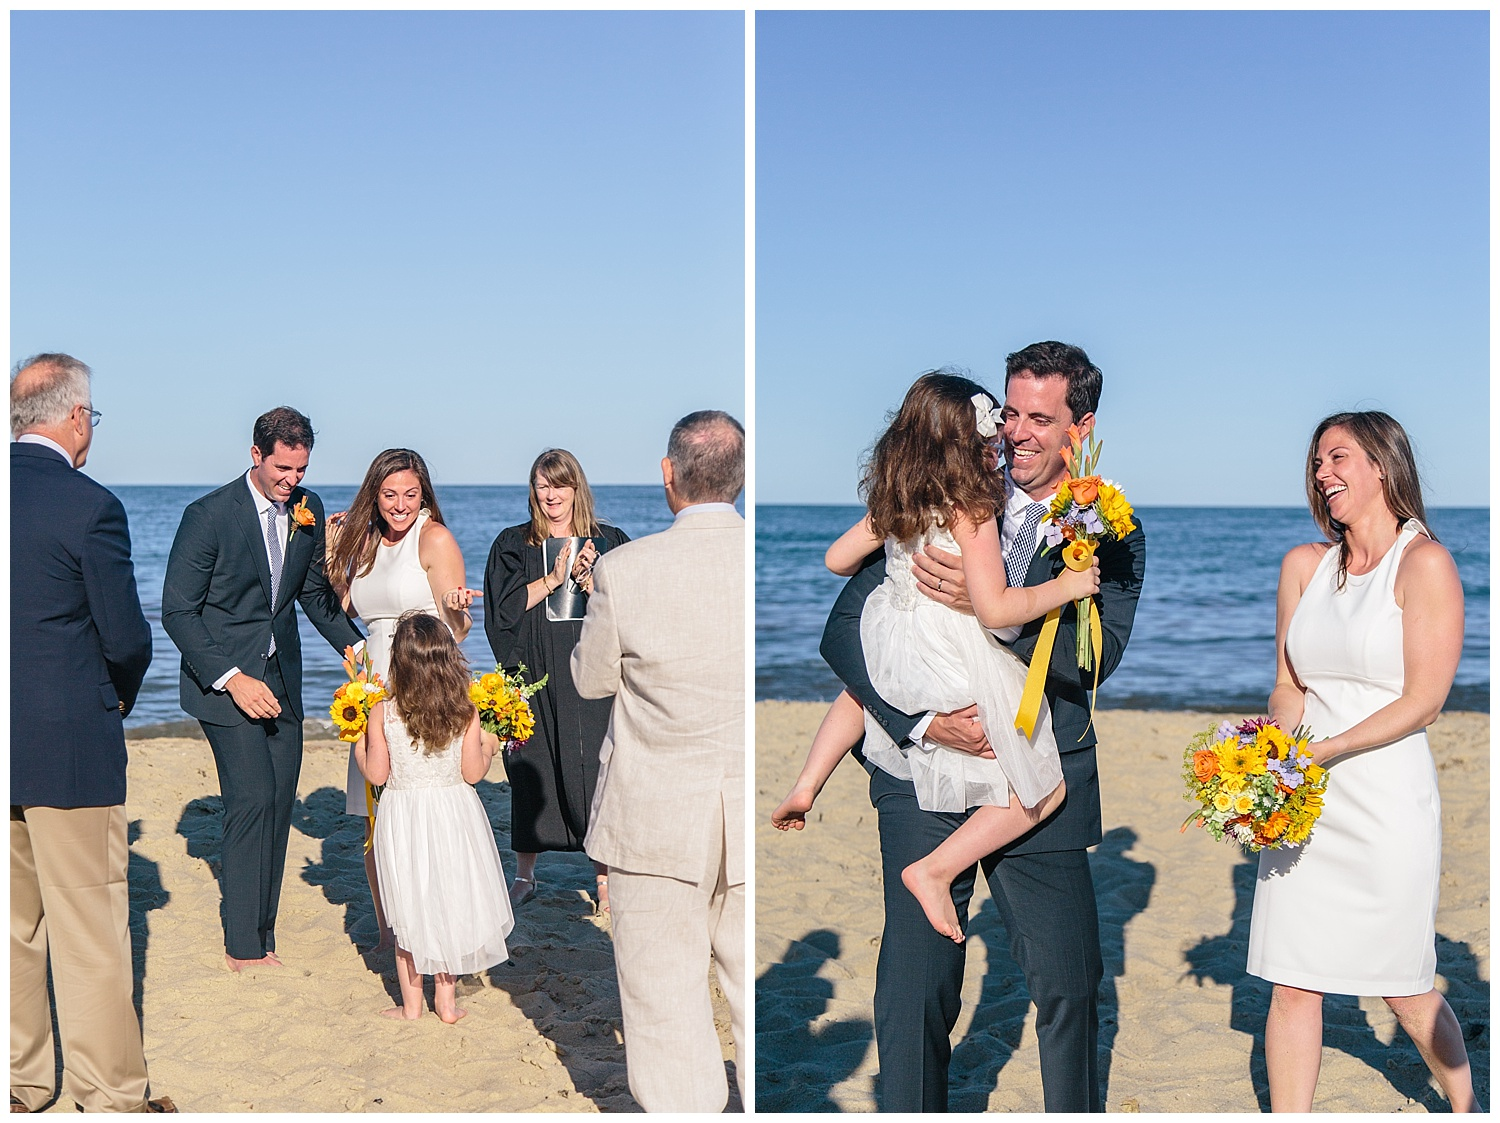 emily-belson-photography-nantucket-elopement-22.jpg